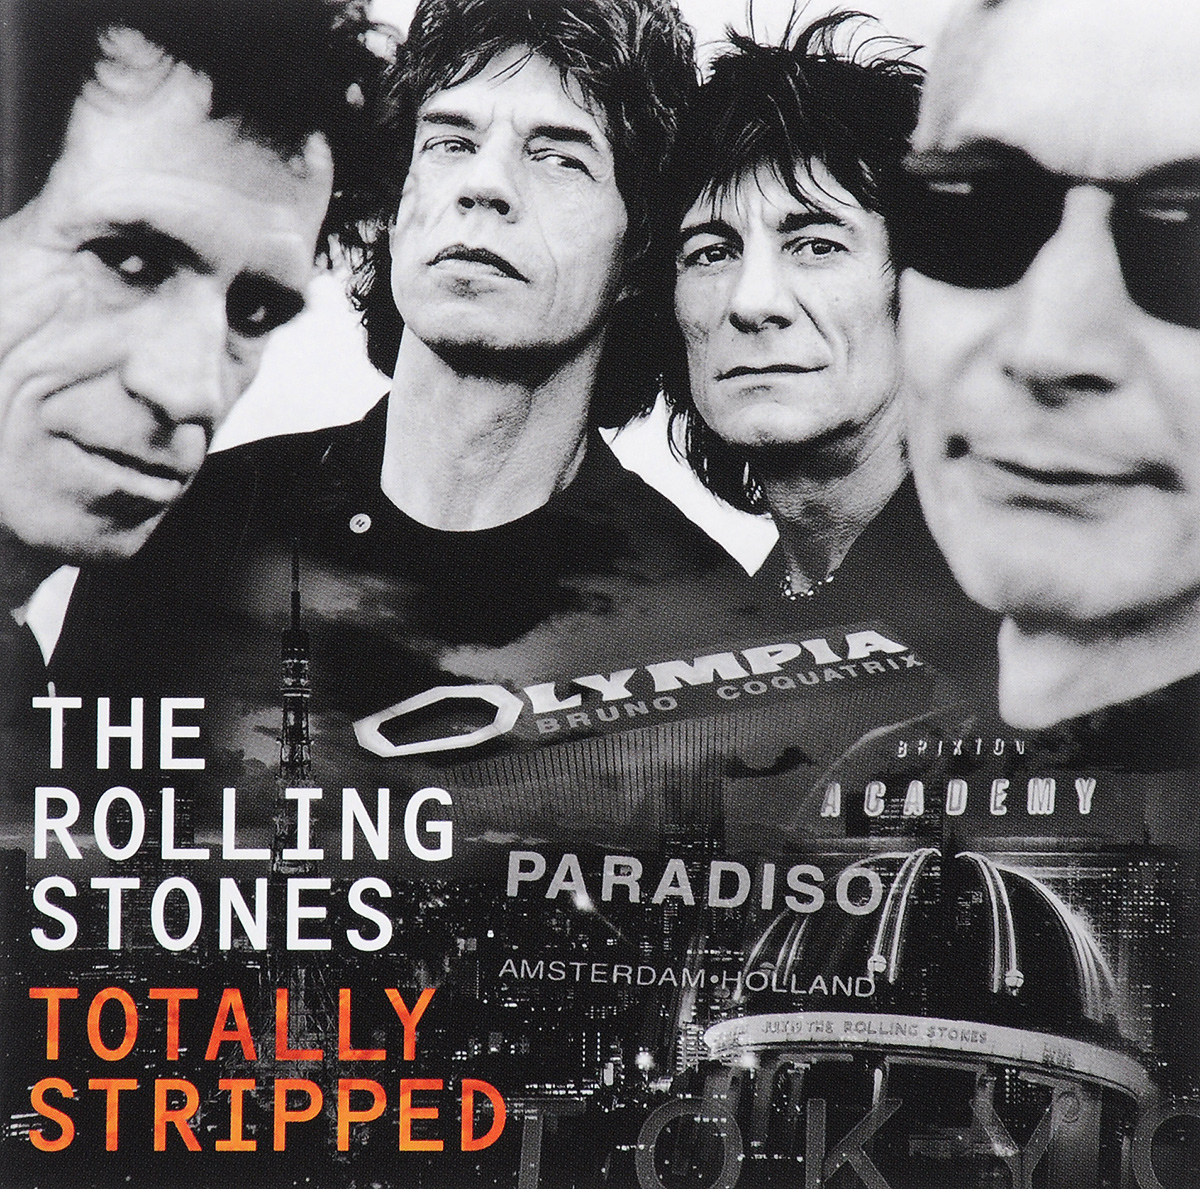 The Rolling Stones The Rolling Stones. Totally Stripped (CD + DVD) альбом для cd и dvd в интернет магазине в спб